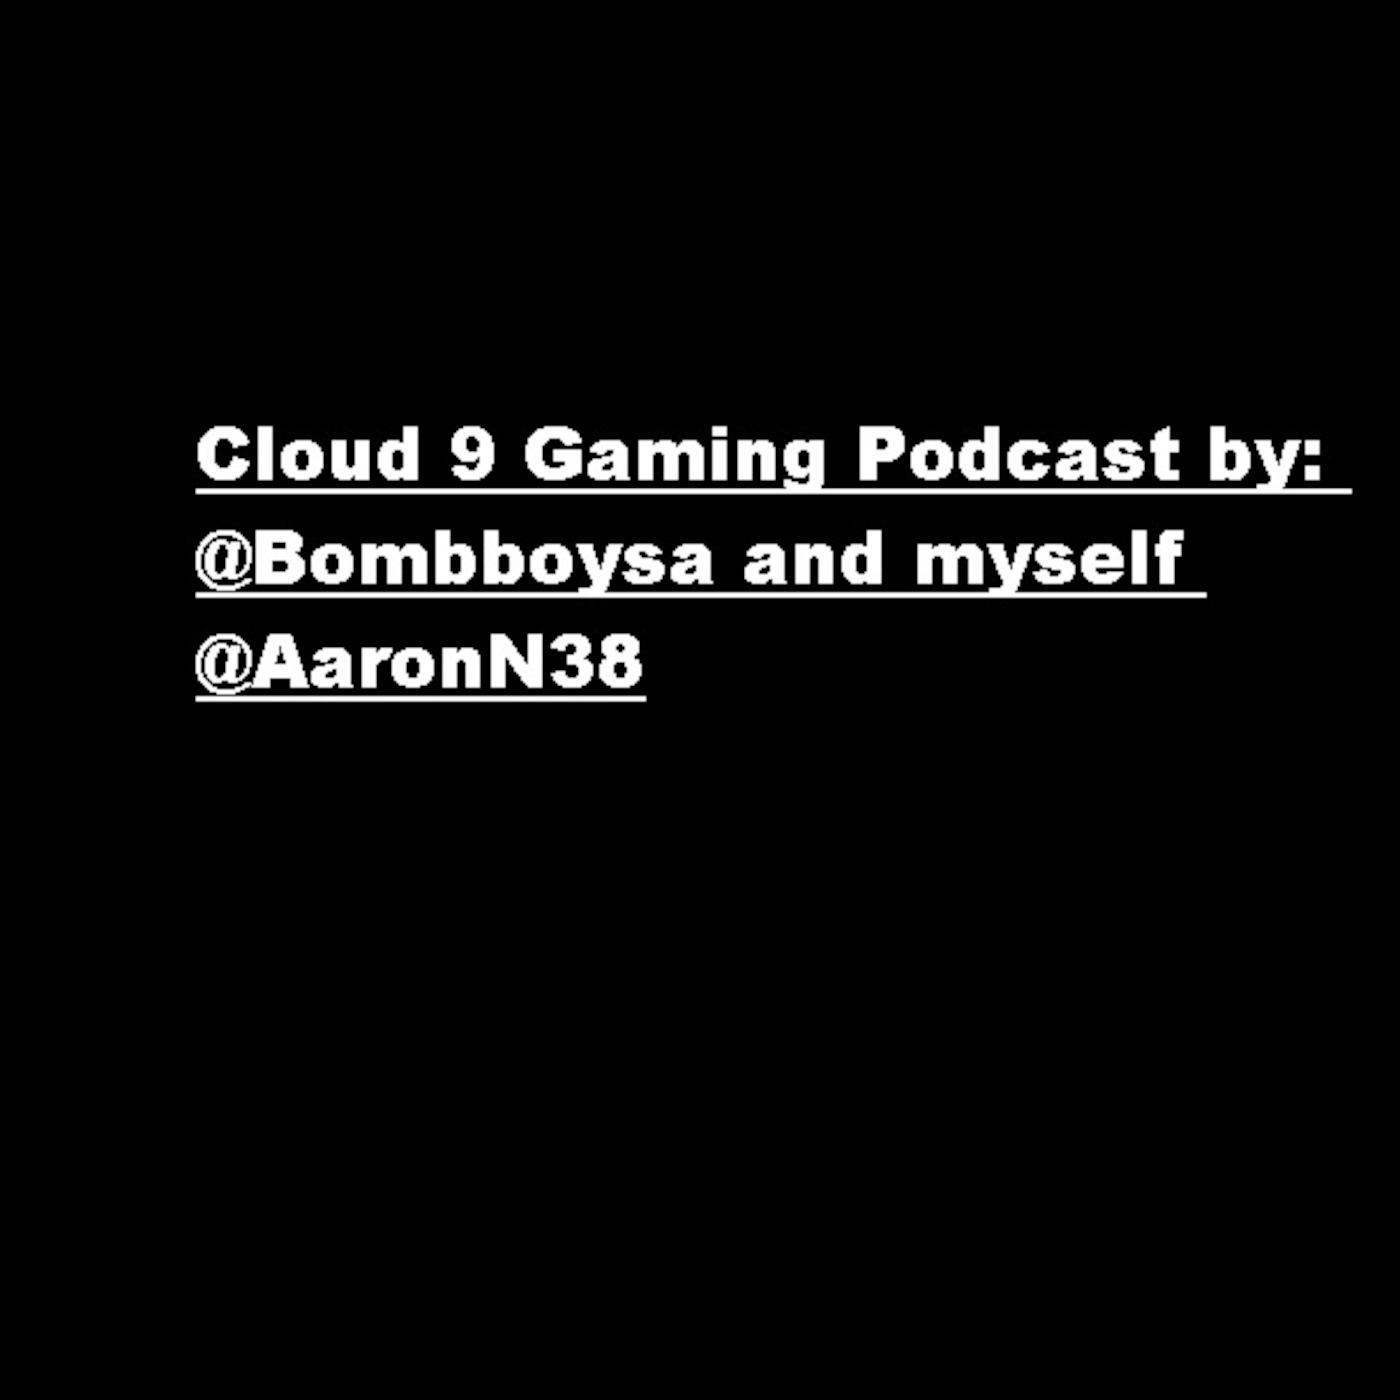 Cloud 9 Gaming Podcast